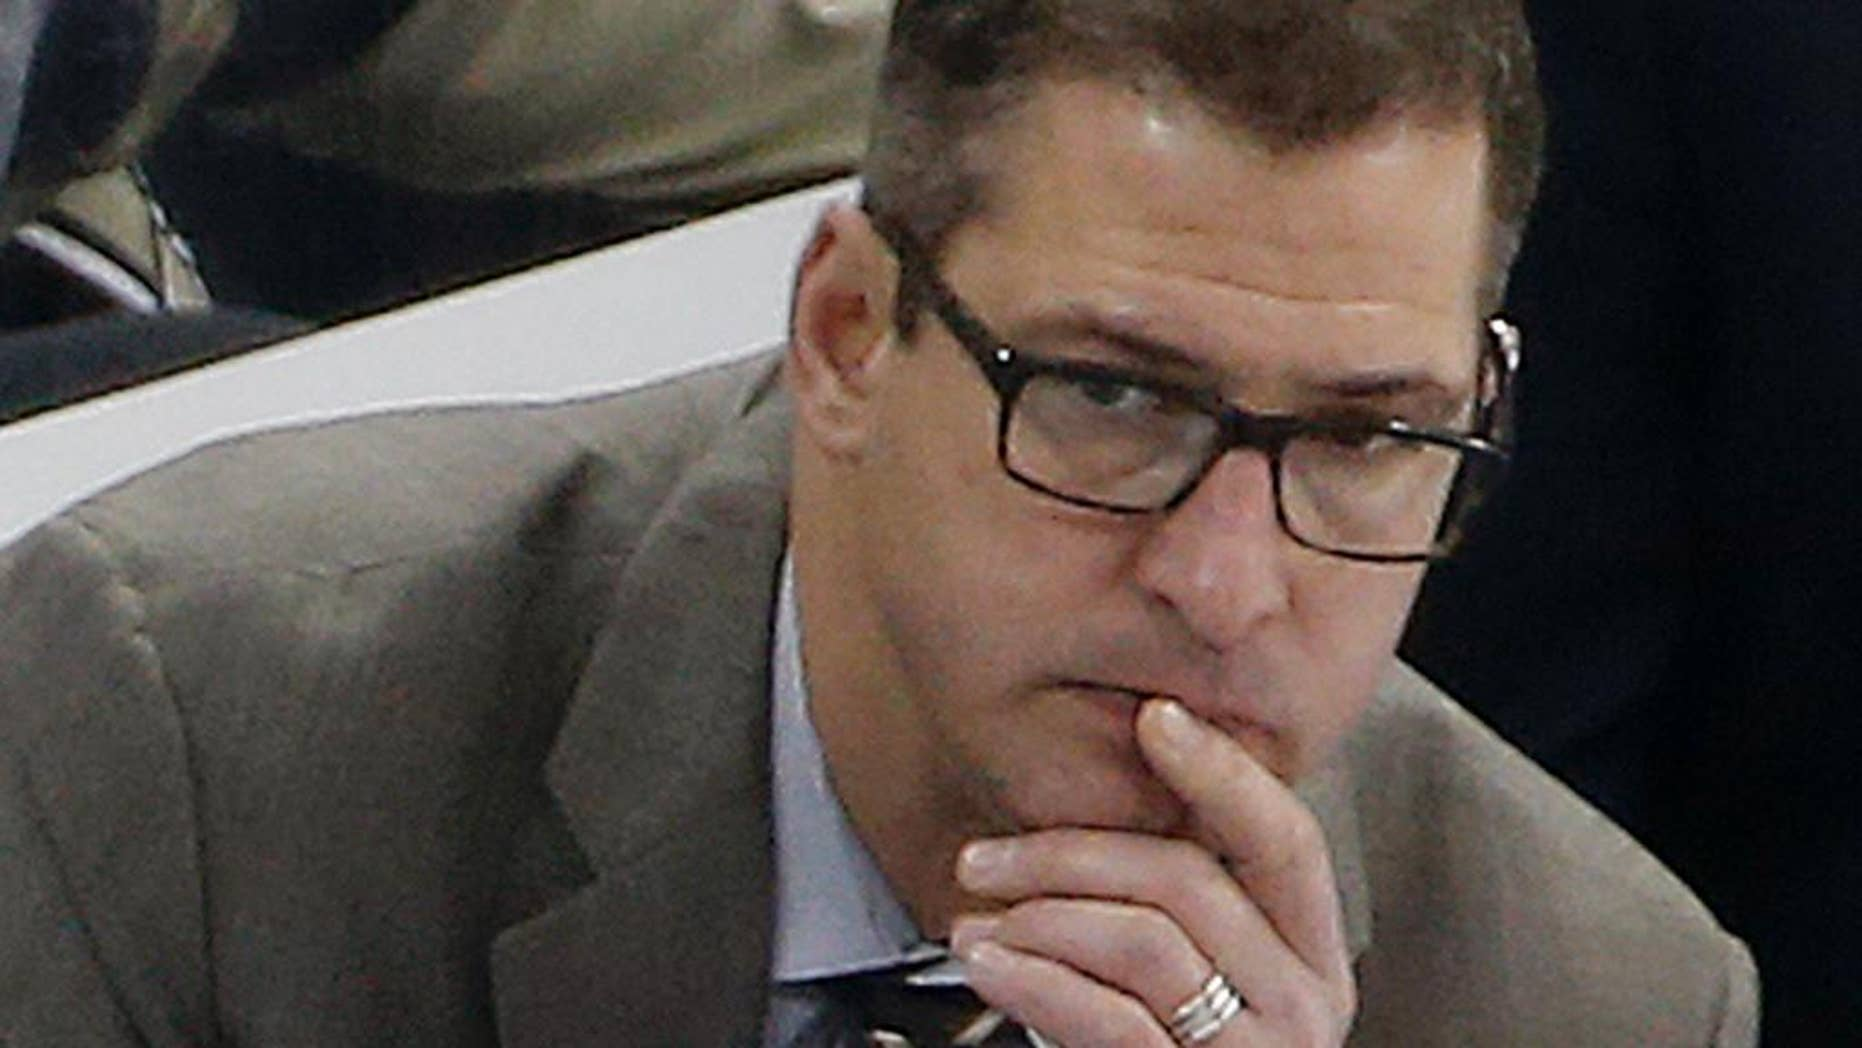 FILE-  In this Jan. 13, 2015, file photo, Minnesota Wild assistant coach Darryl Sydor, shown during an NHL hockey game in Pittsburgh, has been charged with drunken driving after being arrested while taking his 12-year-old son to a hockey game. He has been an assistant coach for the past four seasons and also played 18 seasons in the NHL. (AP Photo/Gene J. Puskar,File)